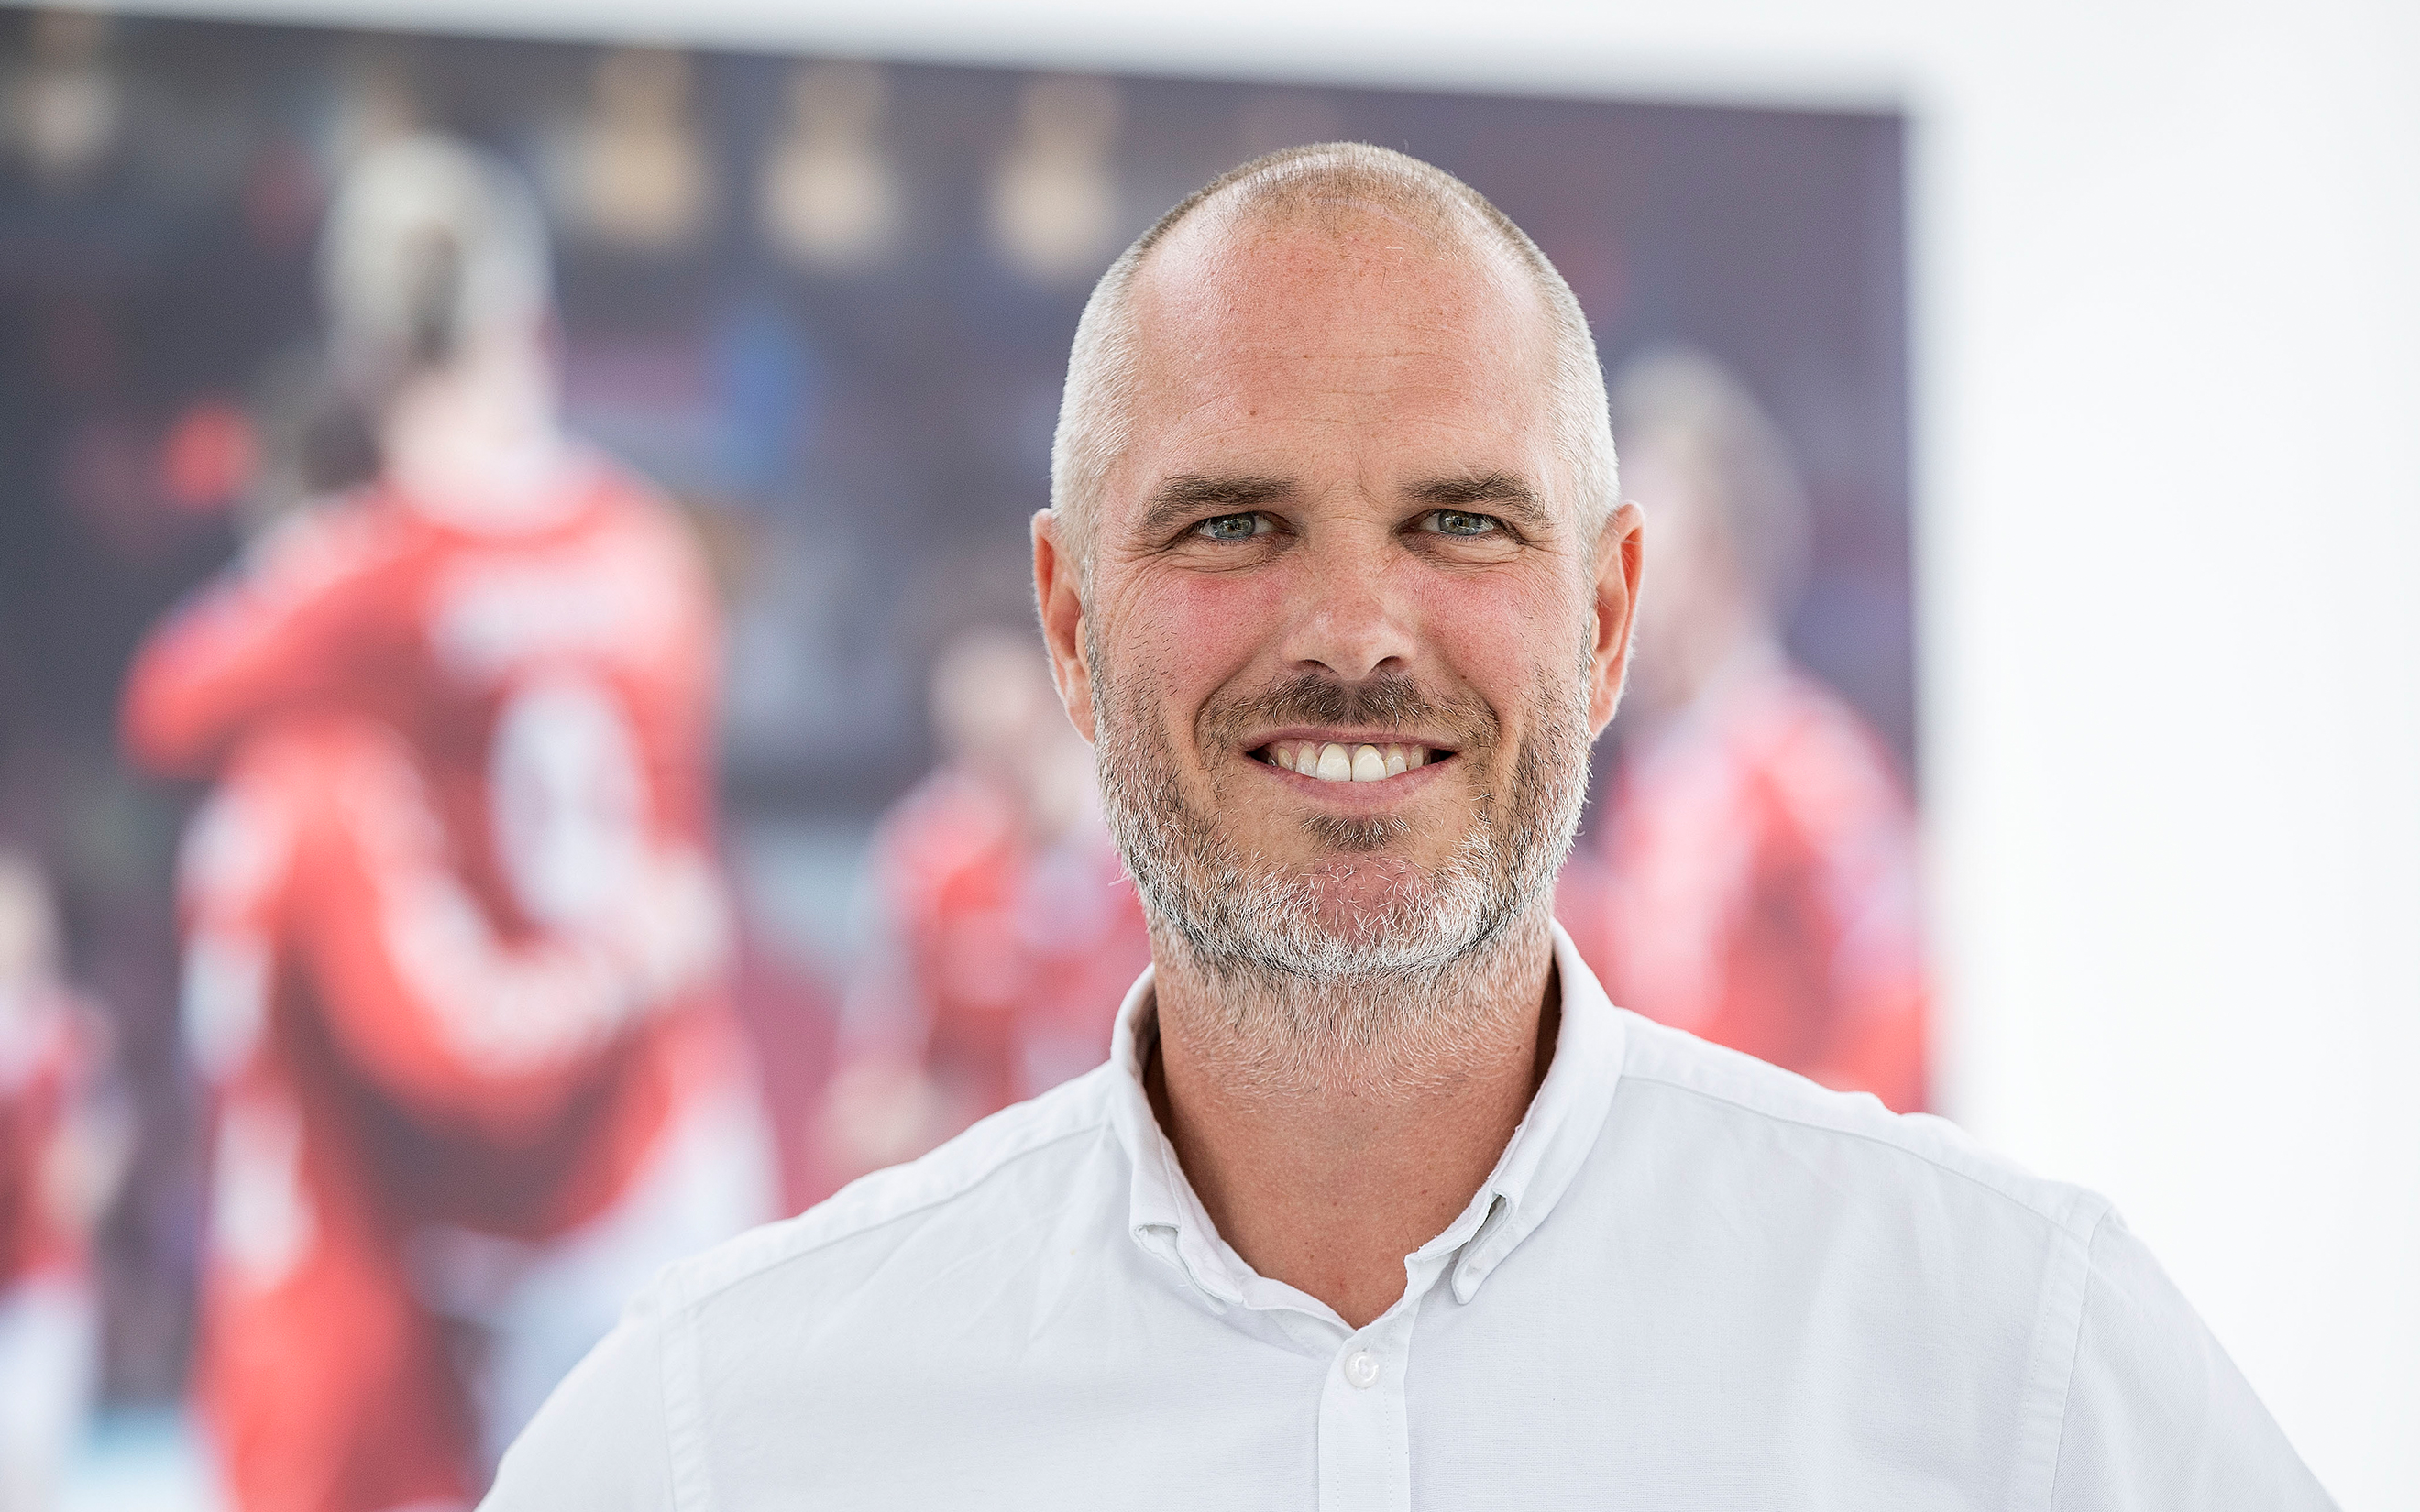 Astralis Group adds new Commercial Director